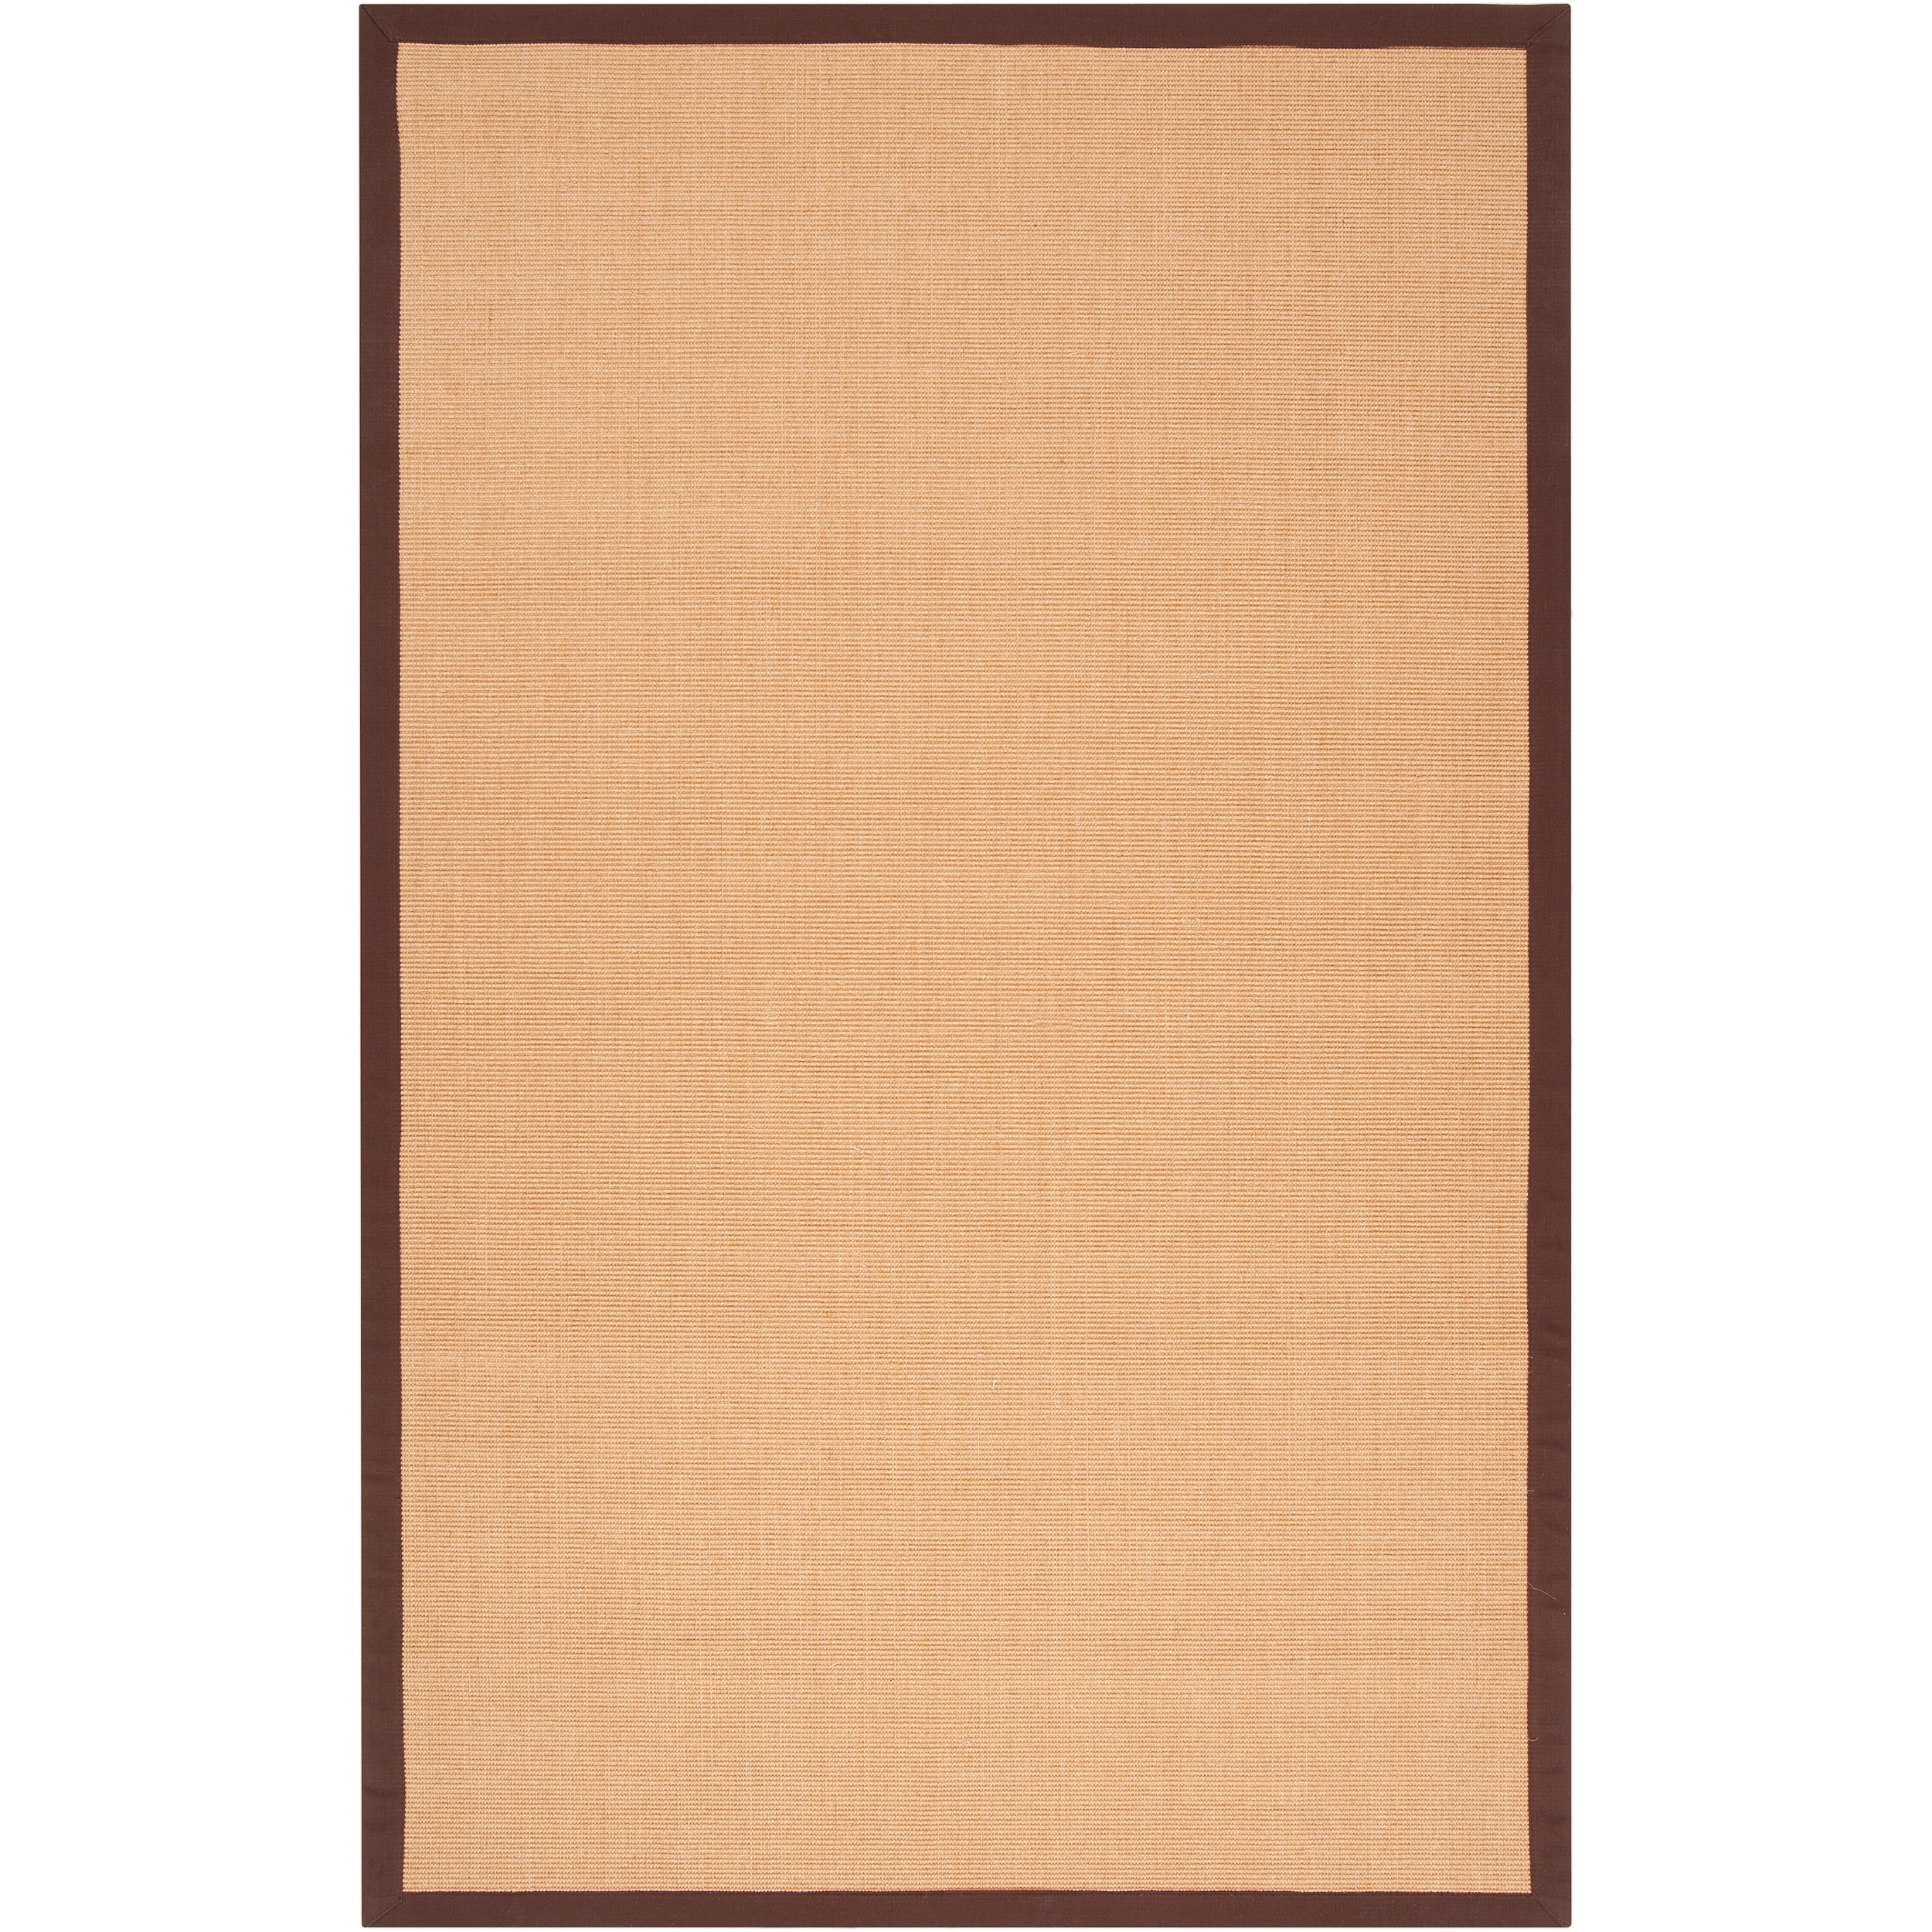 Woven Brown Hillsborough West Natural Fiber Sisal Area Rug (6' x 9') - Thumbnail 0